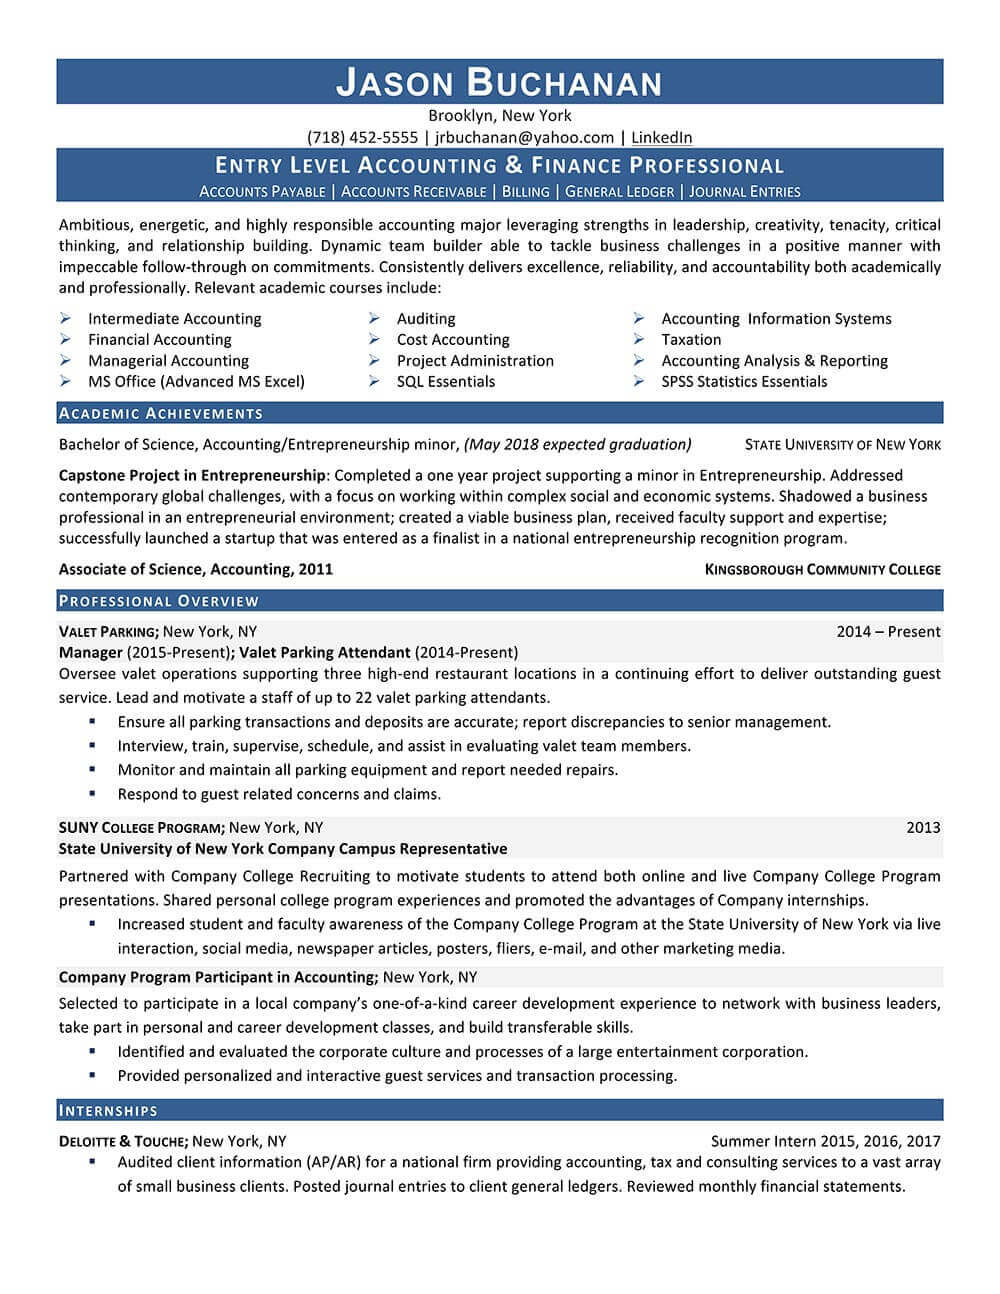 top resume writing service entry level best companies monster outline middle school art Resume Best Resume Writing Companies